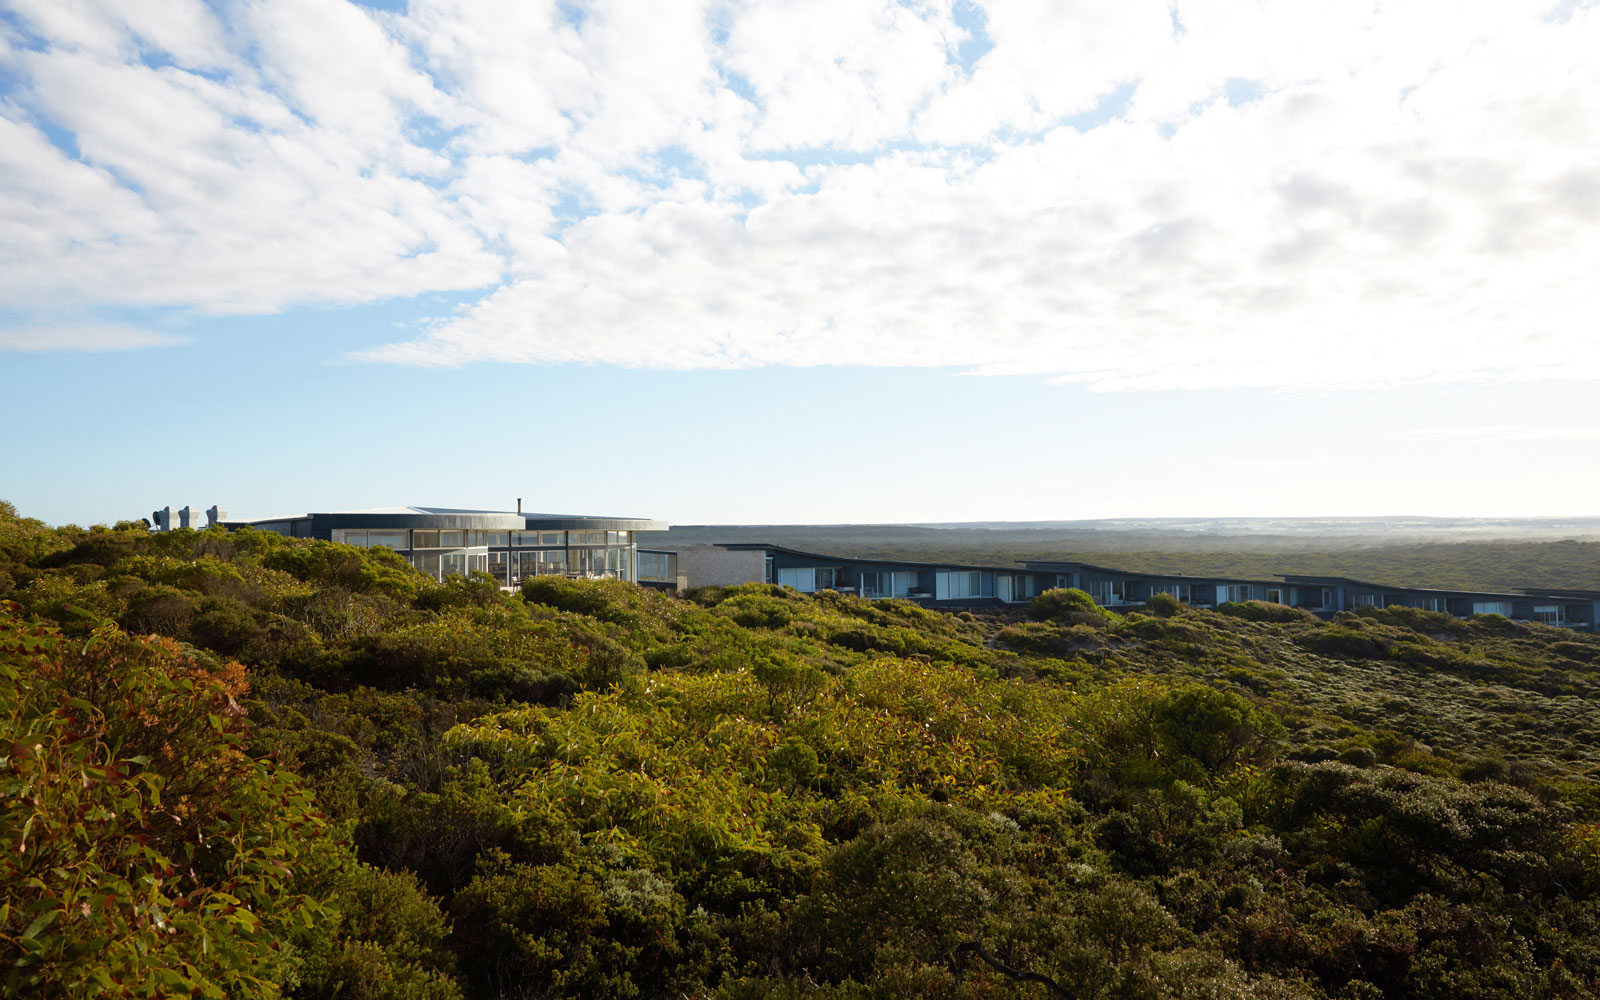 2. Southern Ocean Lodge in Australia